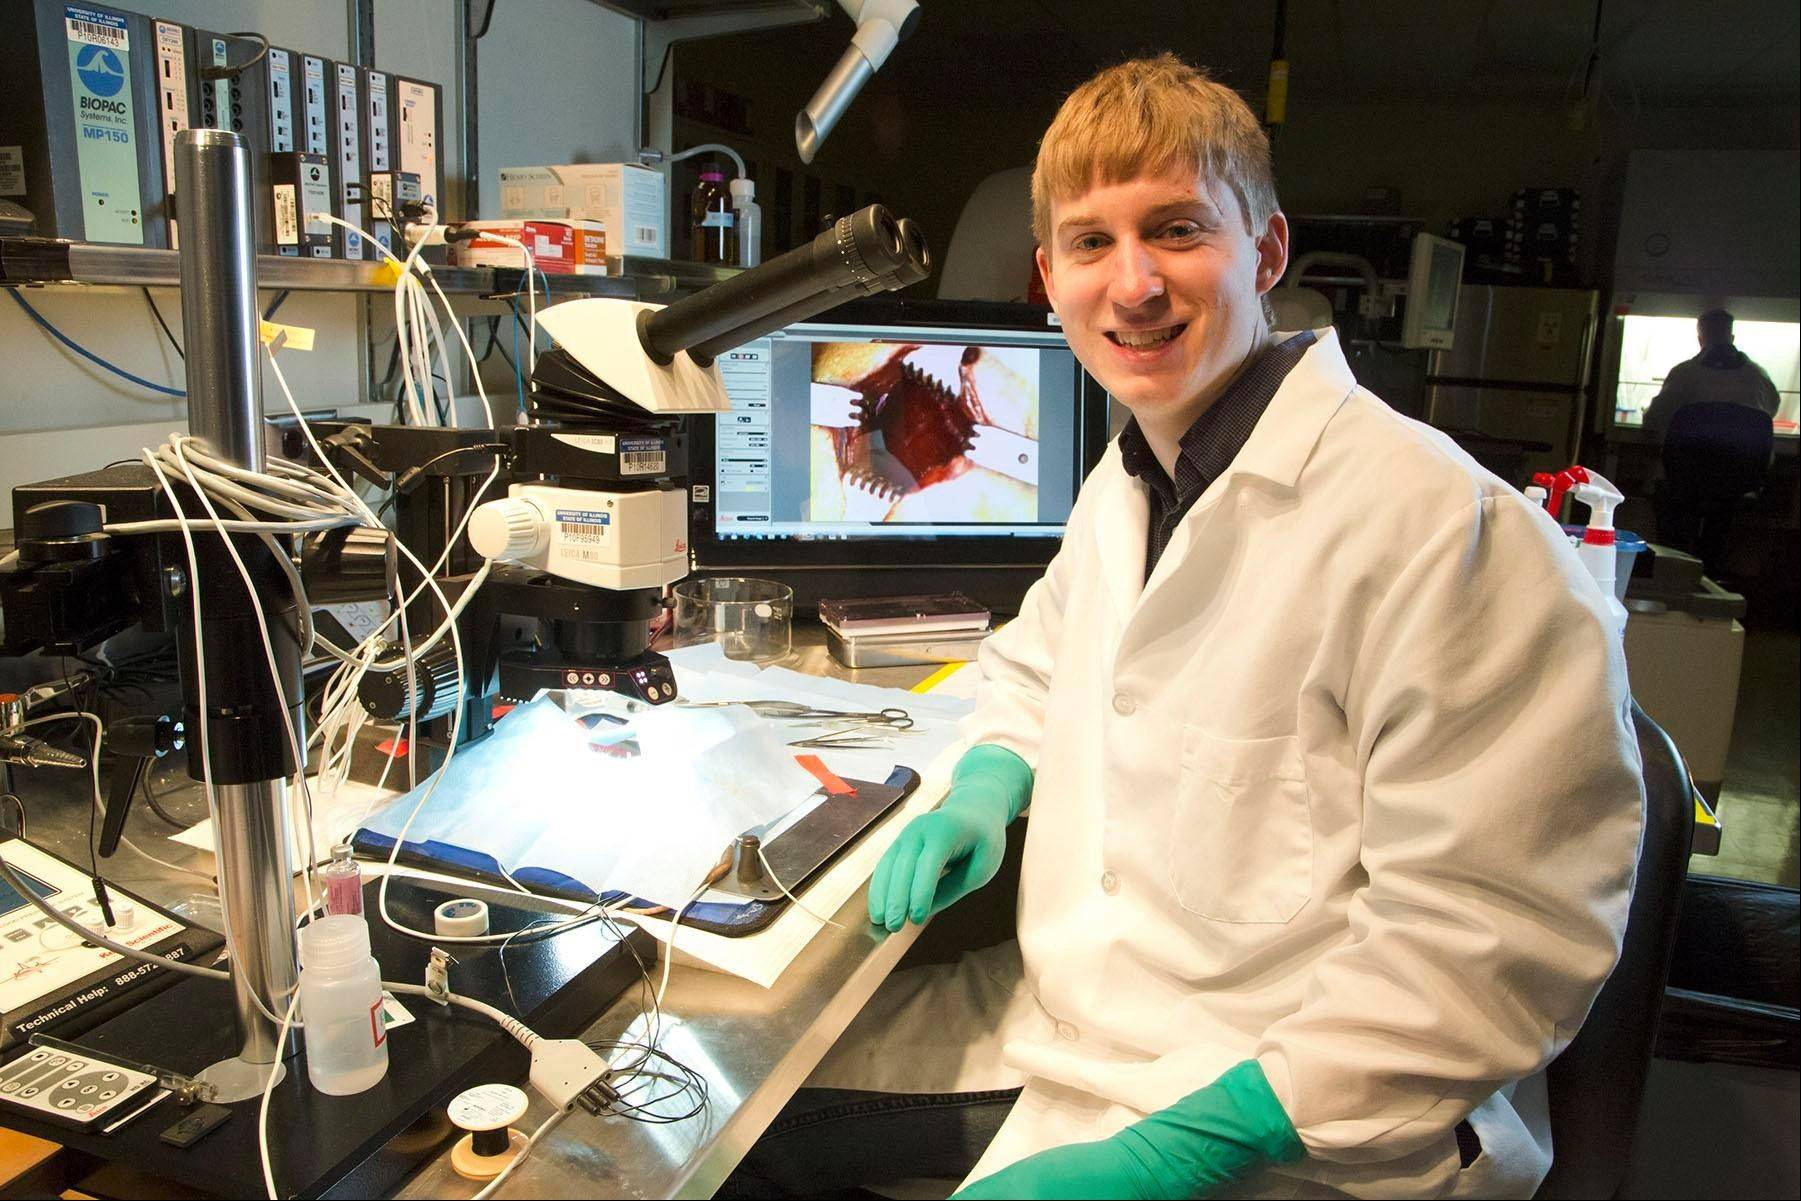 University of Illinois senior Matt Schuelke assists with cutting-edge imaging research aimed at benefiting diabetic patients. The Hoffman Estates native, who five years ago suffered a serious brain injury while skiing, has been accepted into multiple M.D./Ph.D. programs.